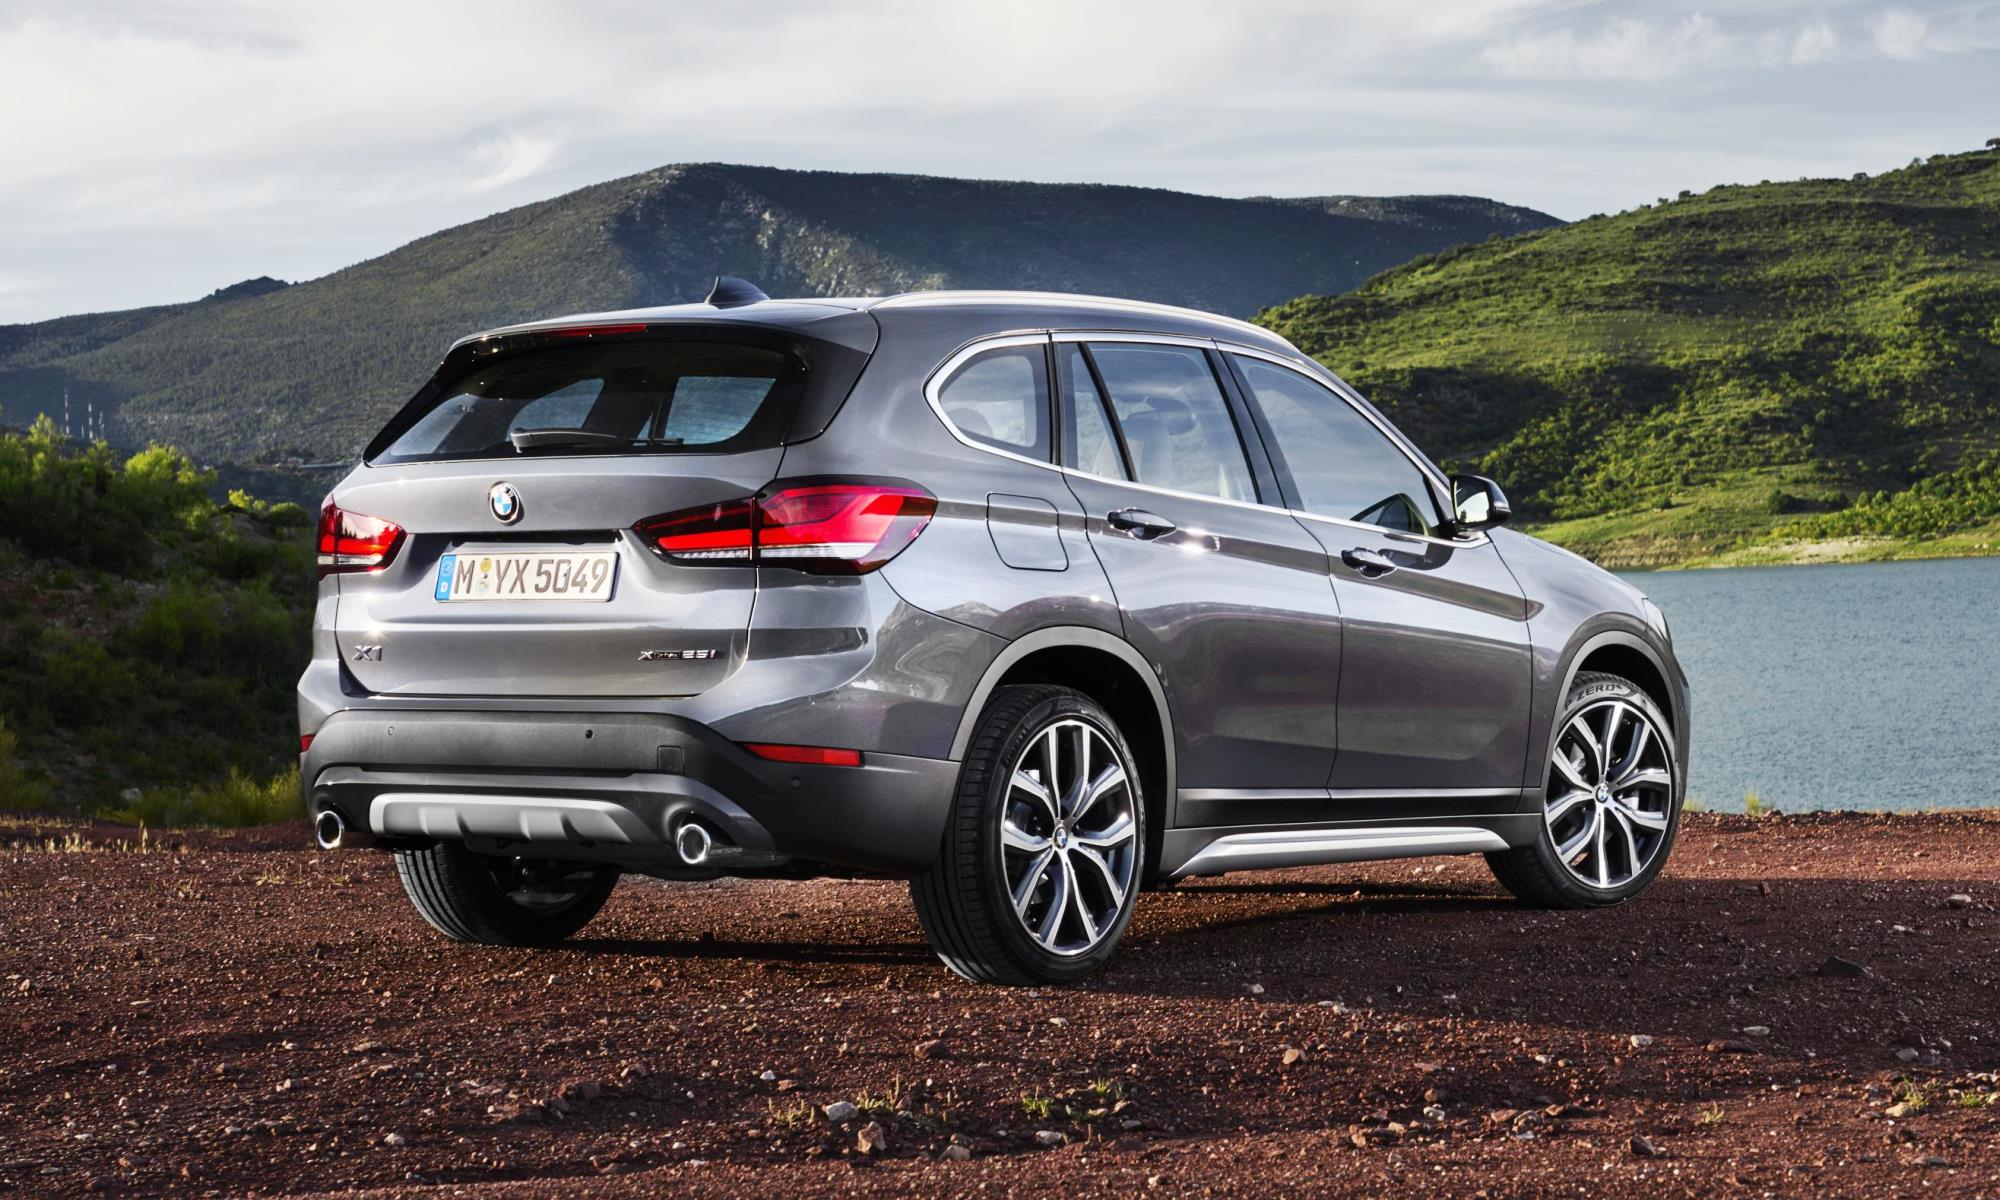 New BMW X1 rear